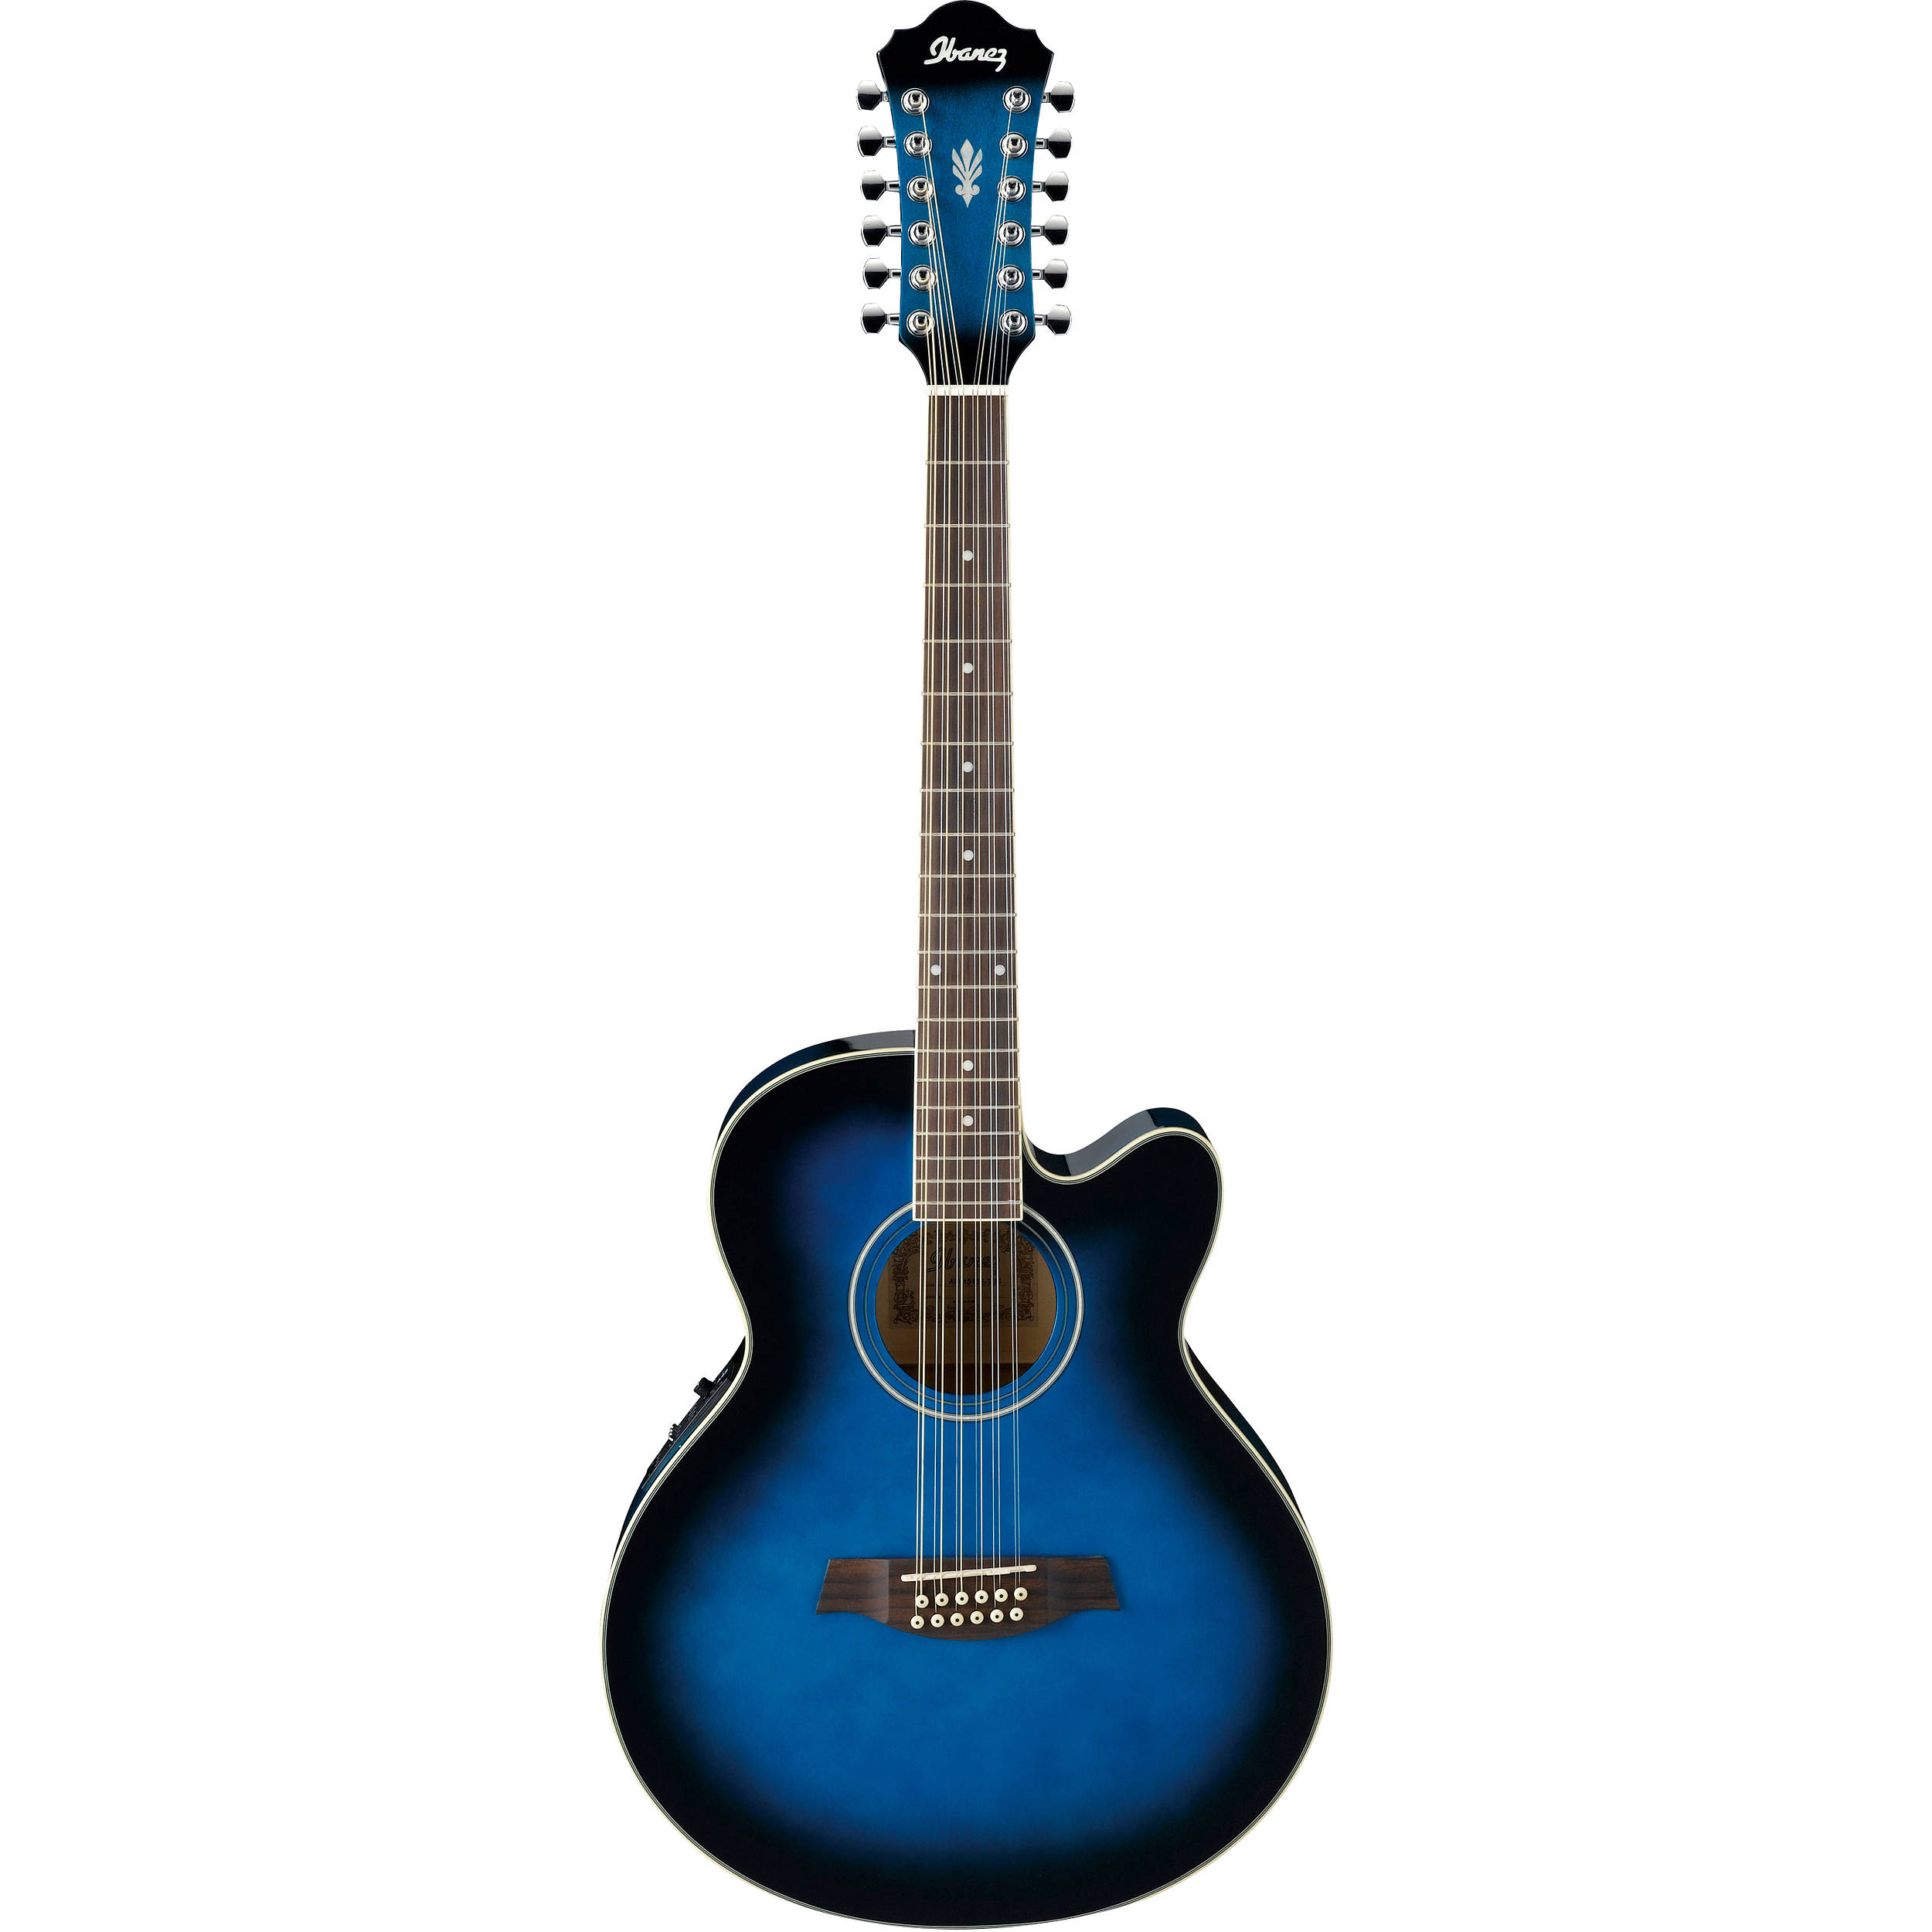 Ibanez AEL1512E Acoustic Electric 12 String Guitar Transparent Blue Sunburst